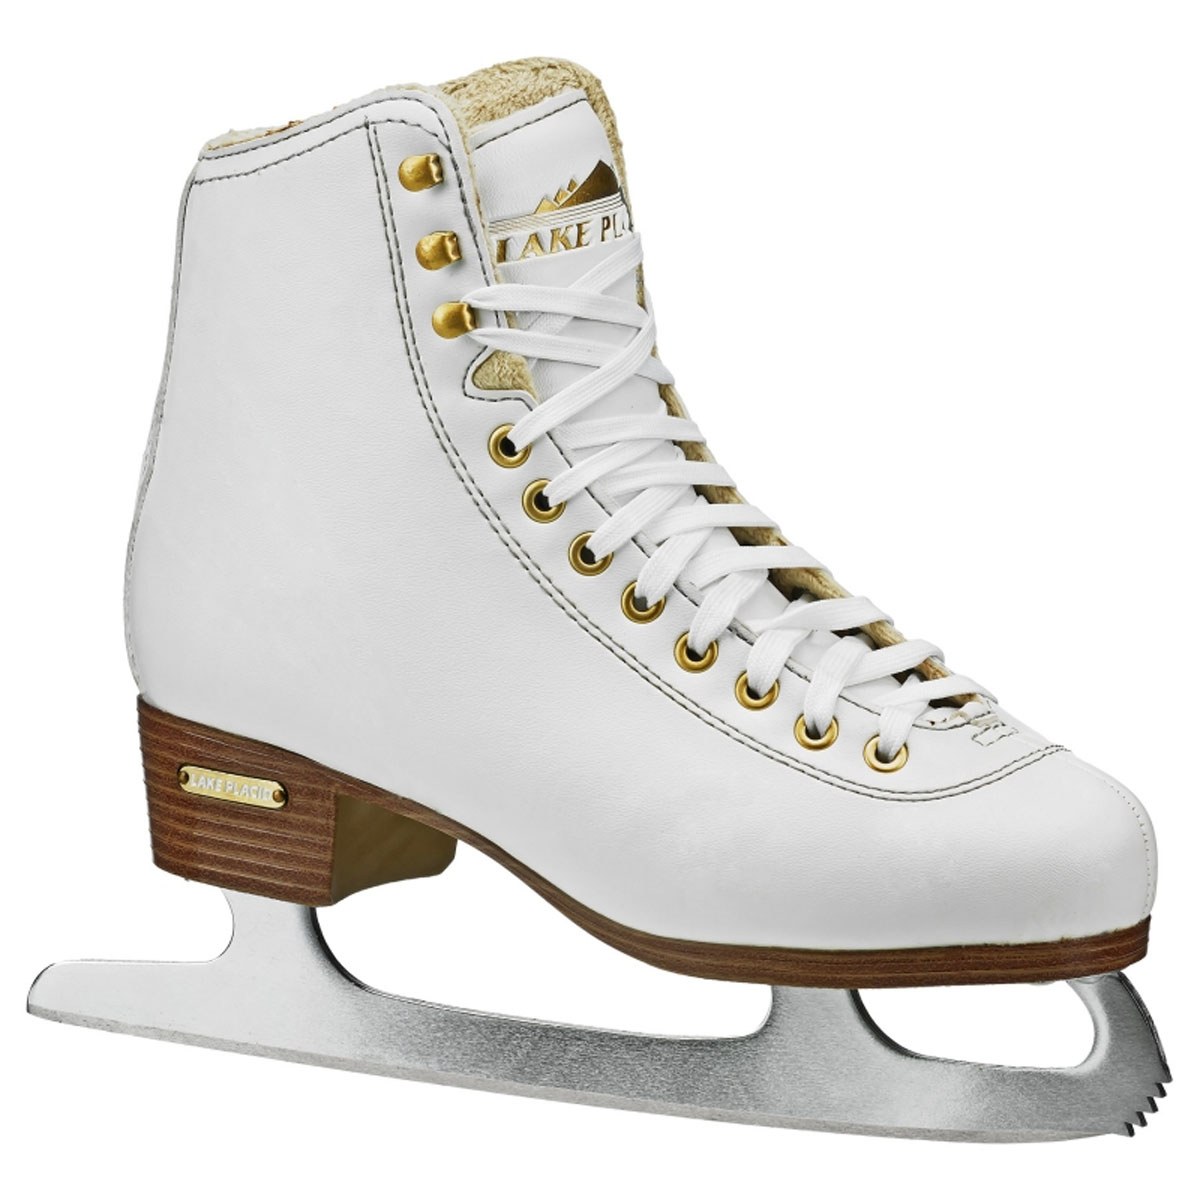 Lake Placid Women's Alpine 900 Traditional Ice Skates by Roller Derby Skate Corp.